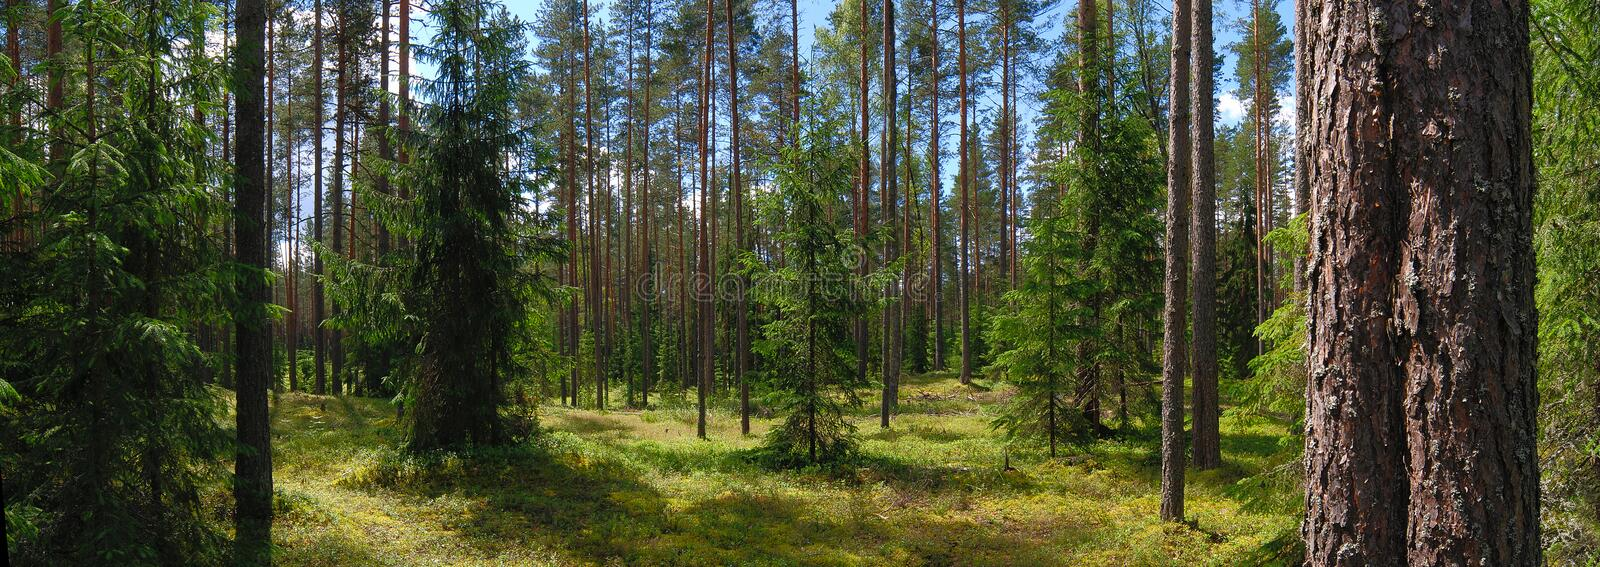 Panorama of forest stock image